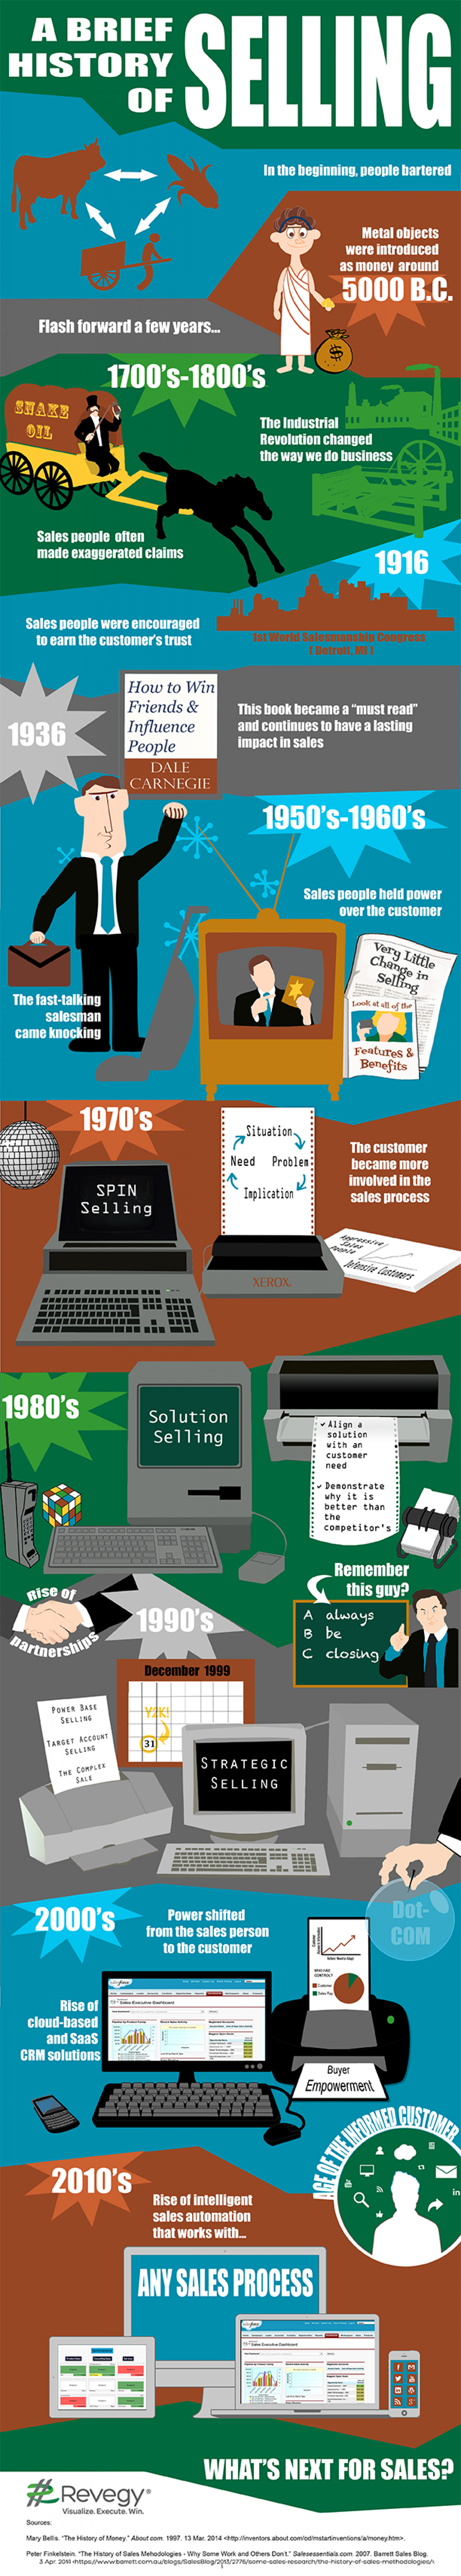 A Brief History of Selling Infographic